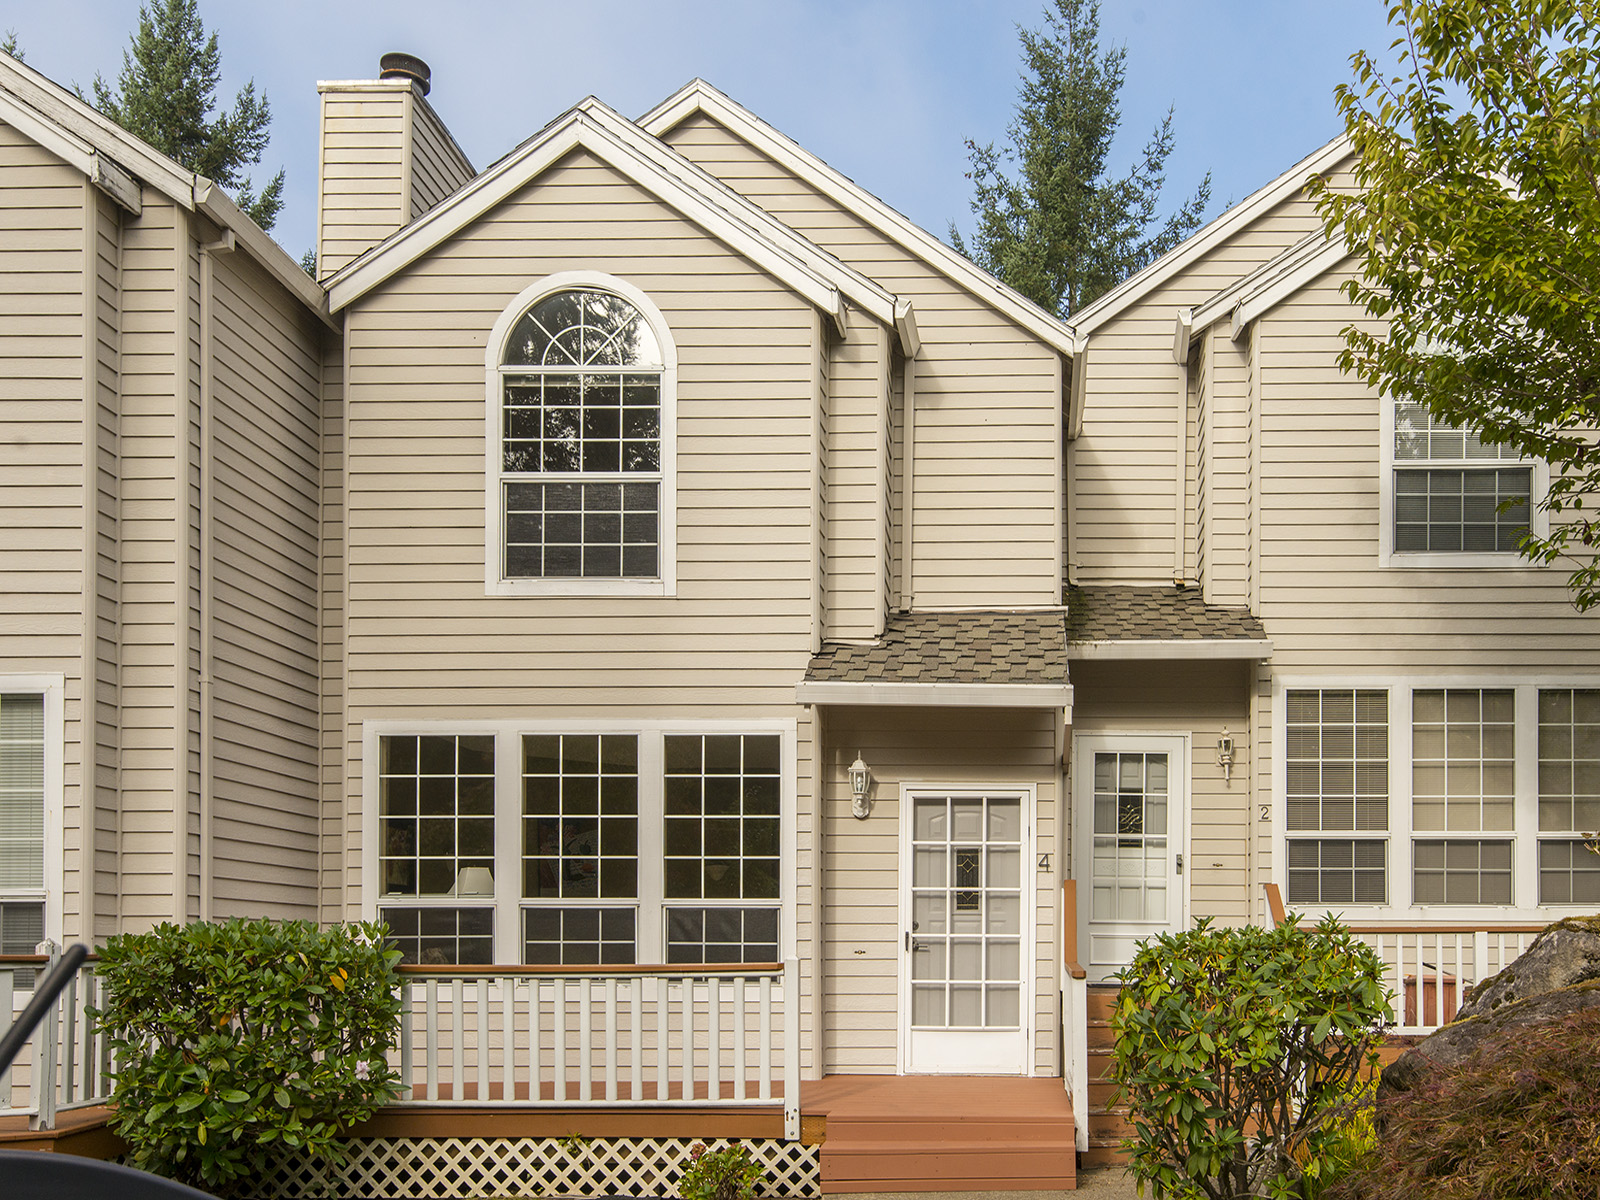 MT Park - LO Townhouse - currently rented $1950/mo